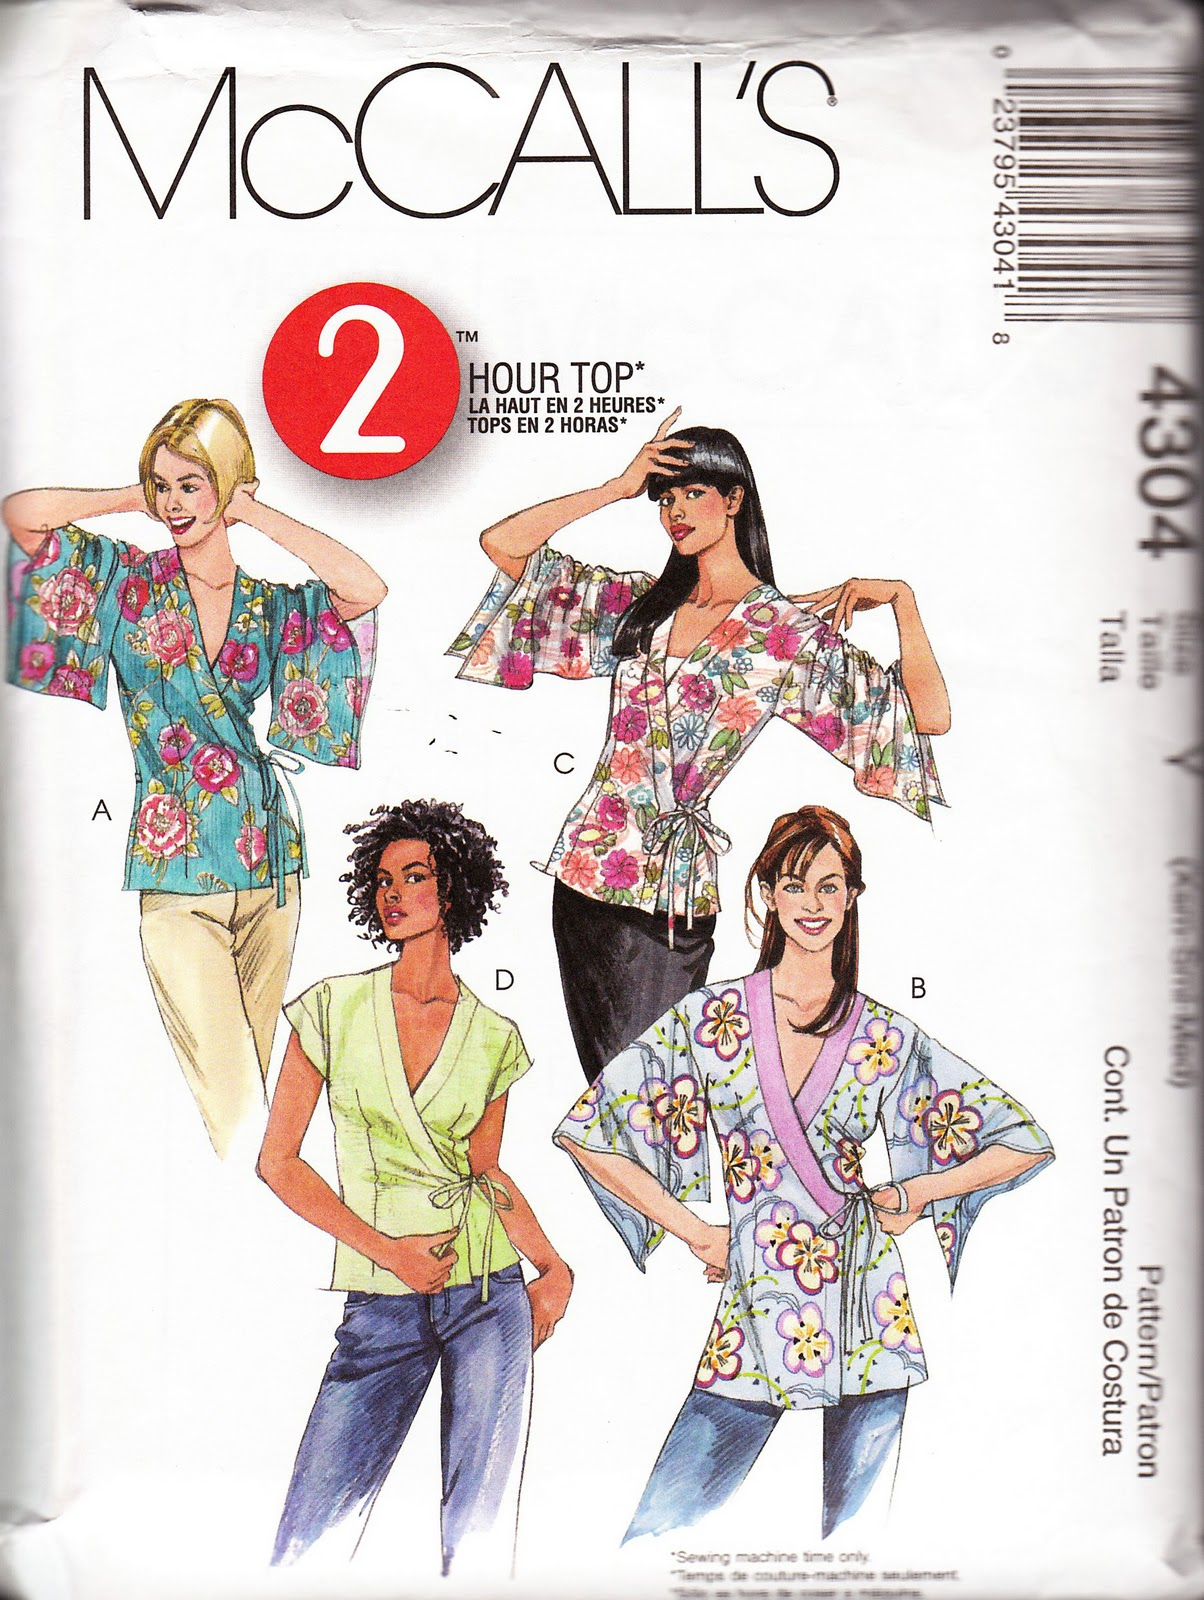 Sew many things mccalls 4304 kimono pattern becomes a summer robe mccalls 4304 kimono pattern becomes a summer robe jeuxipadfo Gallery